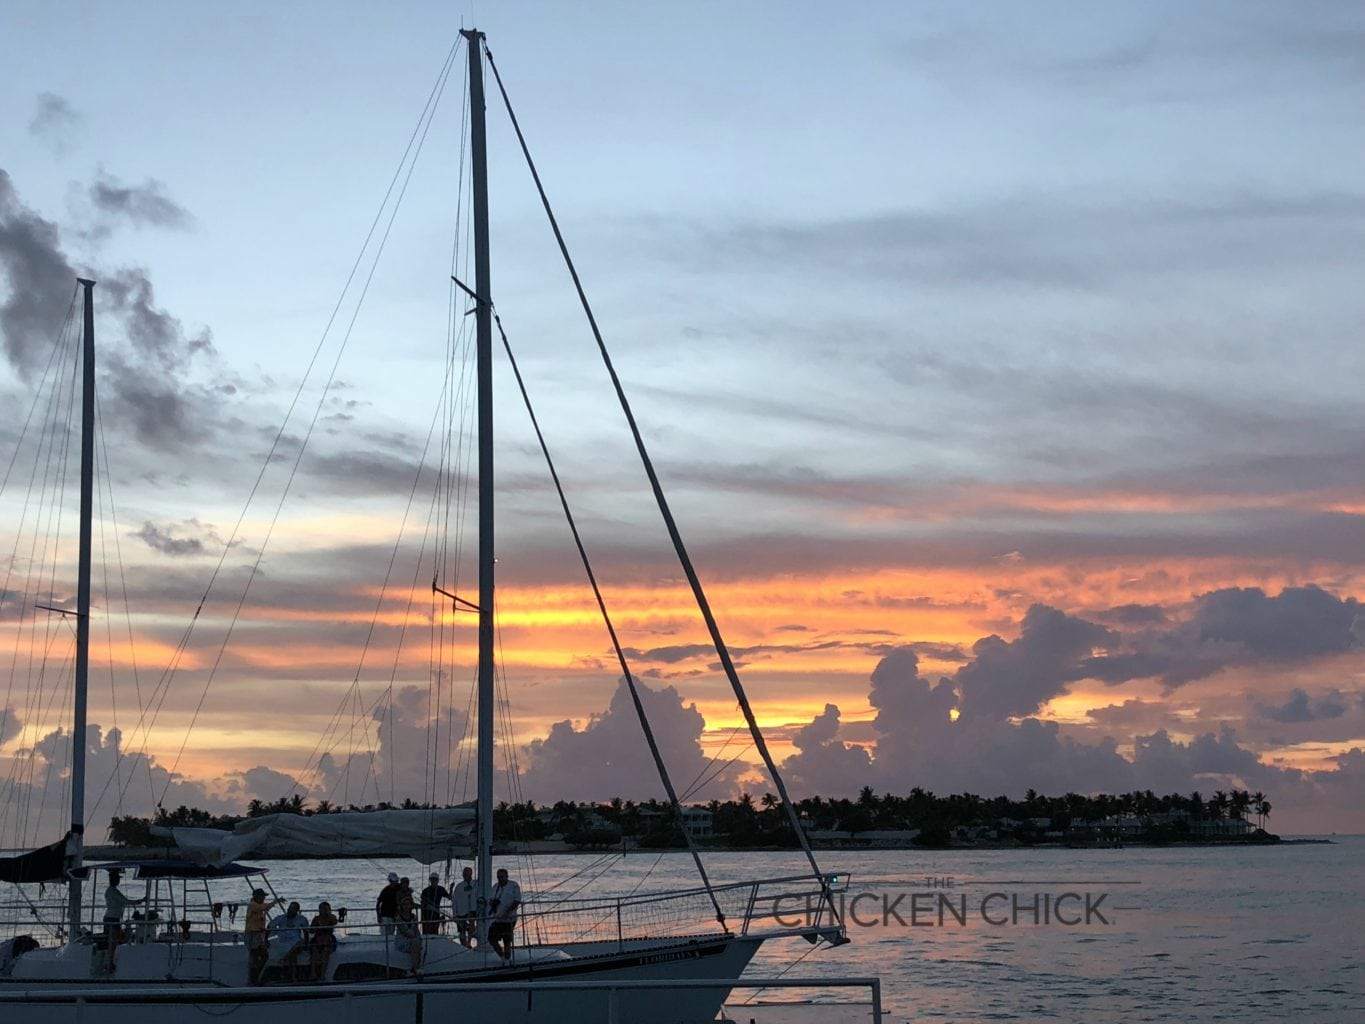 Key West Mallory Square Sunset